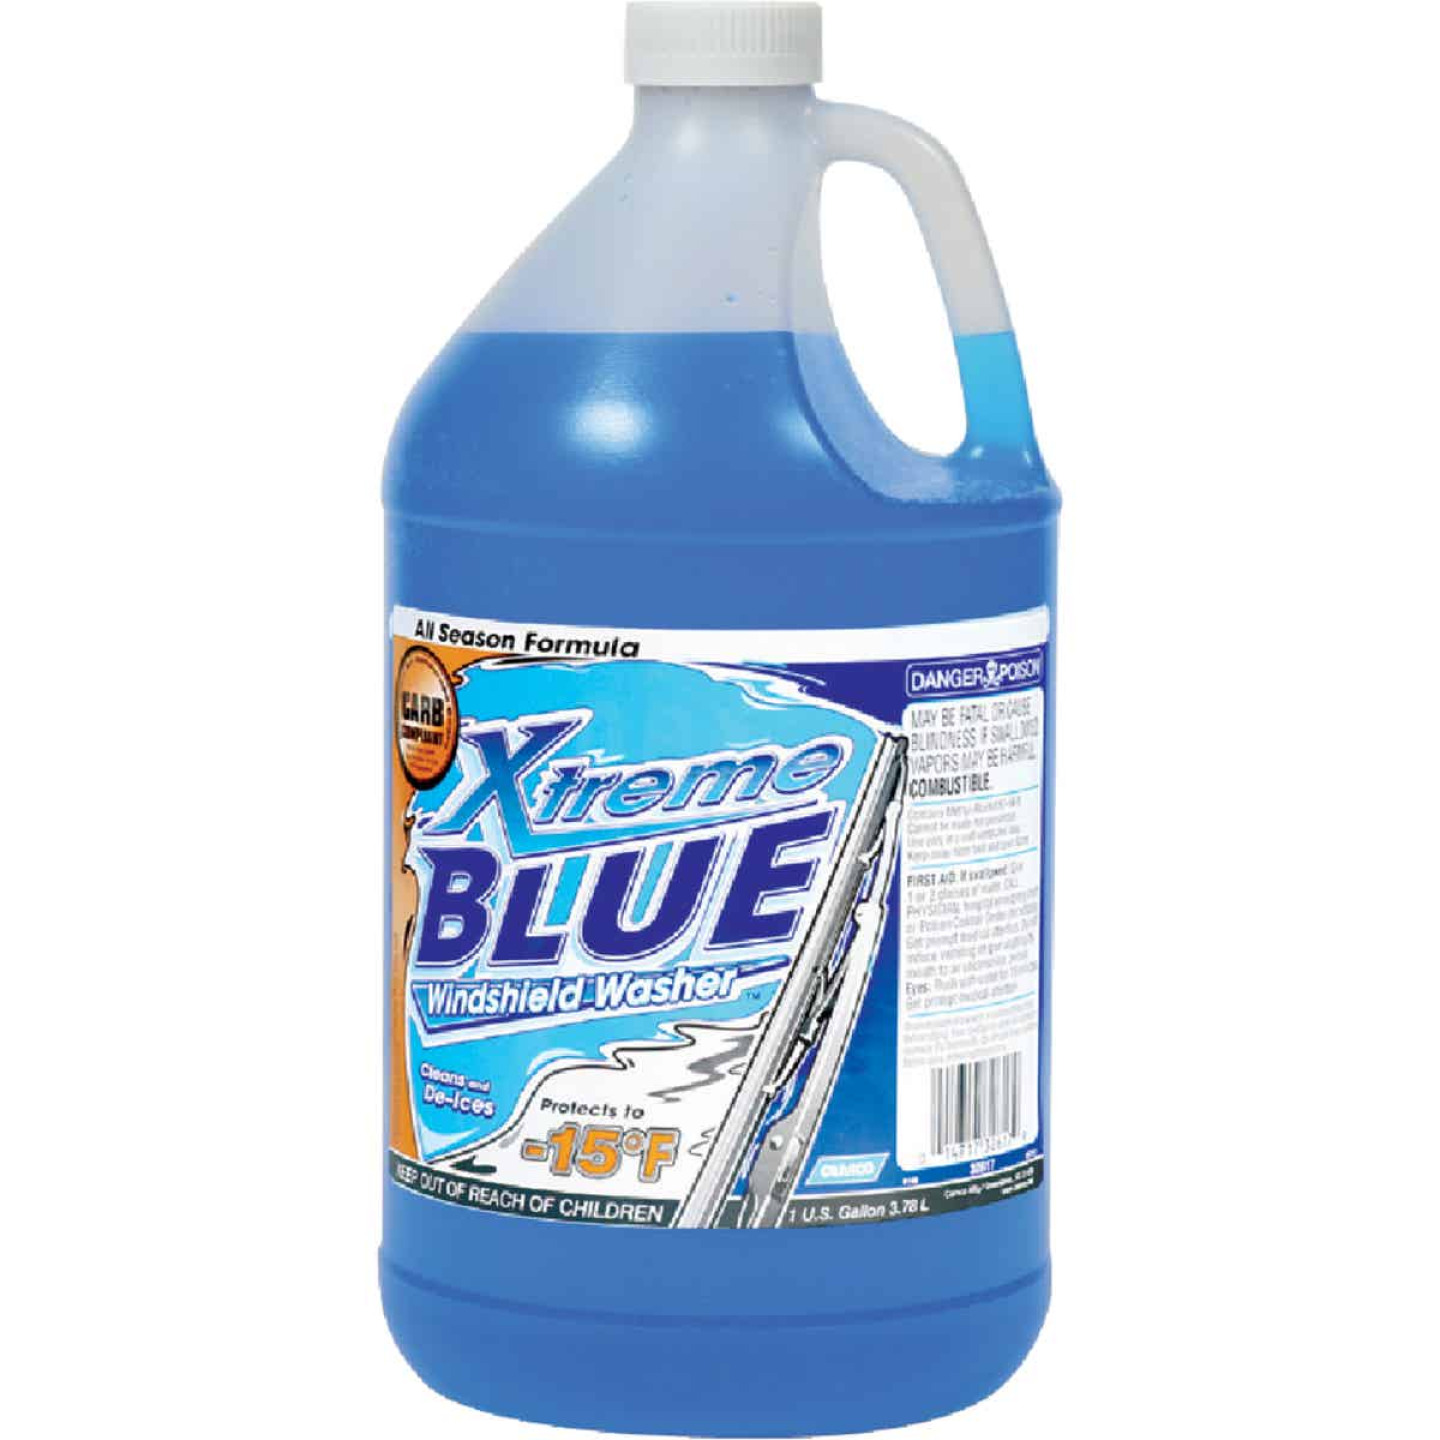 Camco Xtreme Blue 1 Gal. -15 Deg F Temperature Rating Windshield Washer Fluid with Antifreeze Image 1